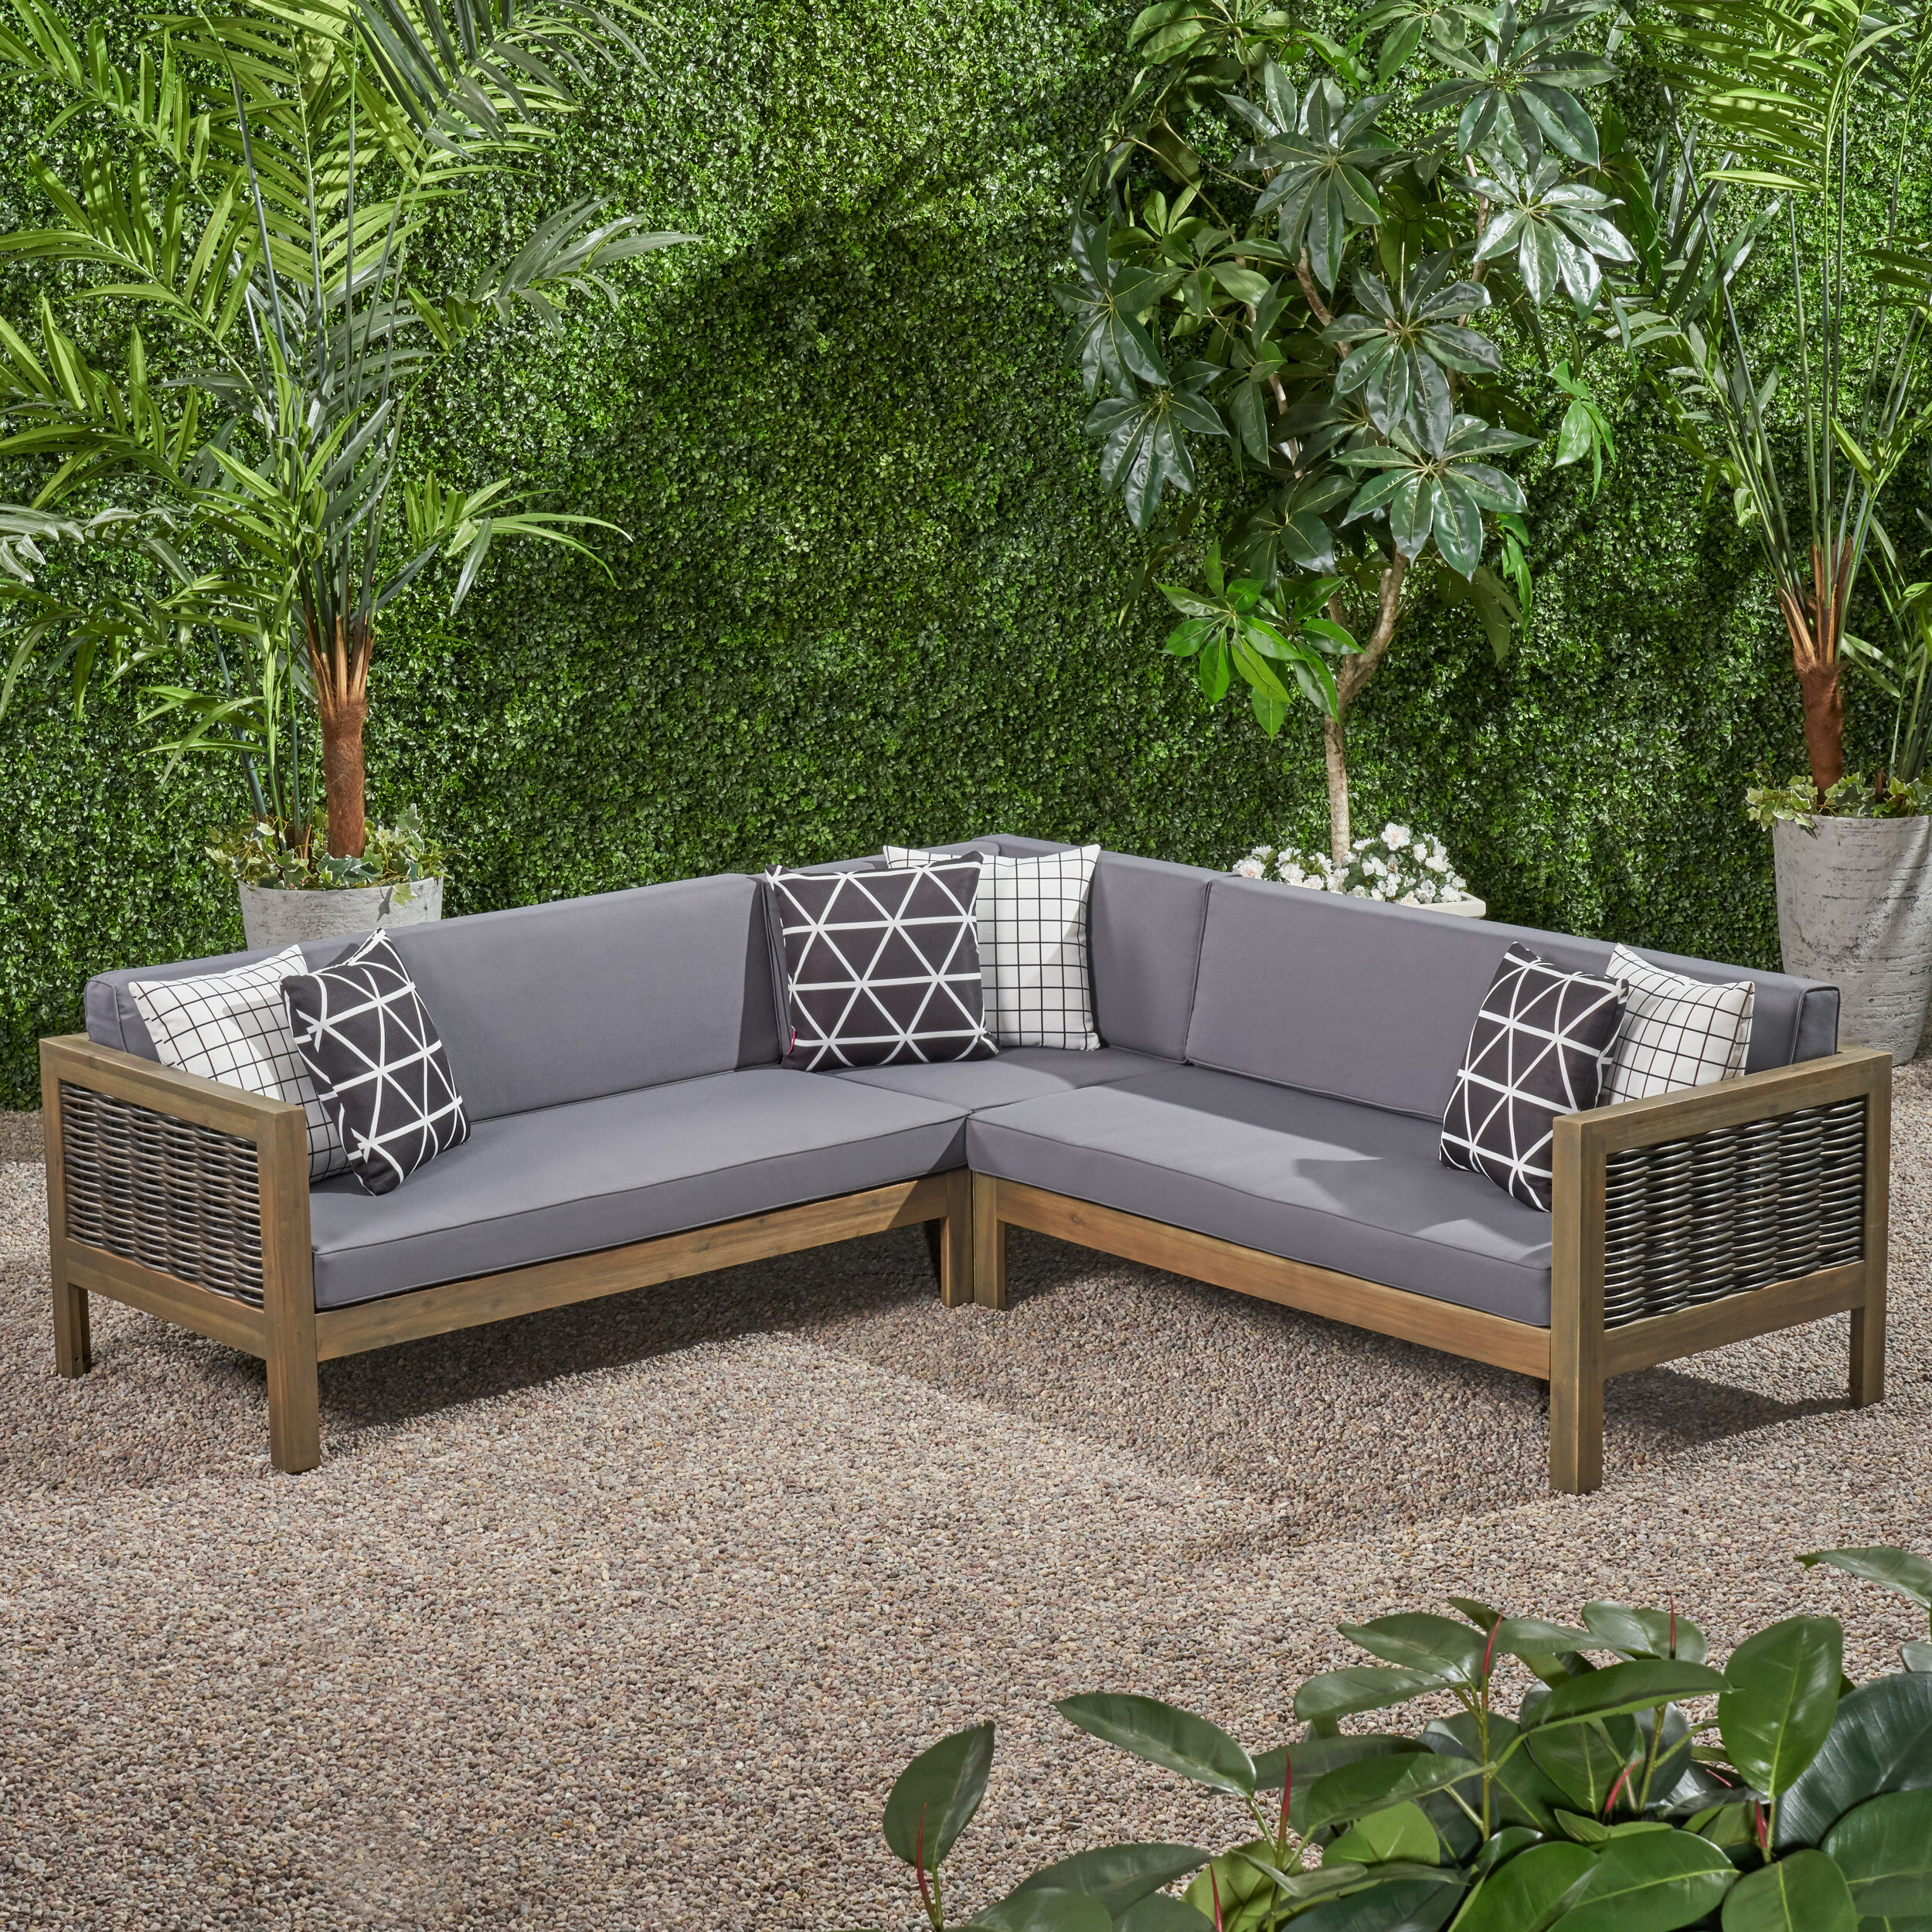 O'kean Teak Patio Sofas With Cushions With Regard To Most Current Kennison Patio Sectional With Cushions (Gallery 23 of 25)